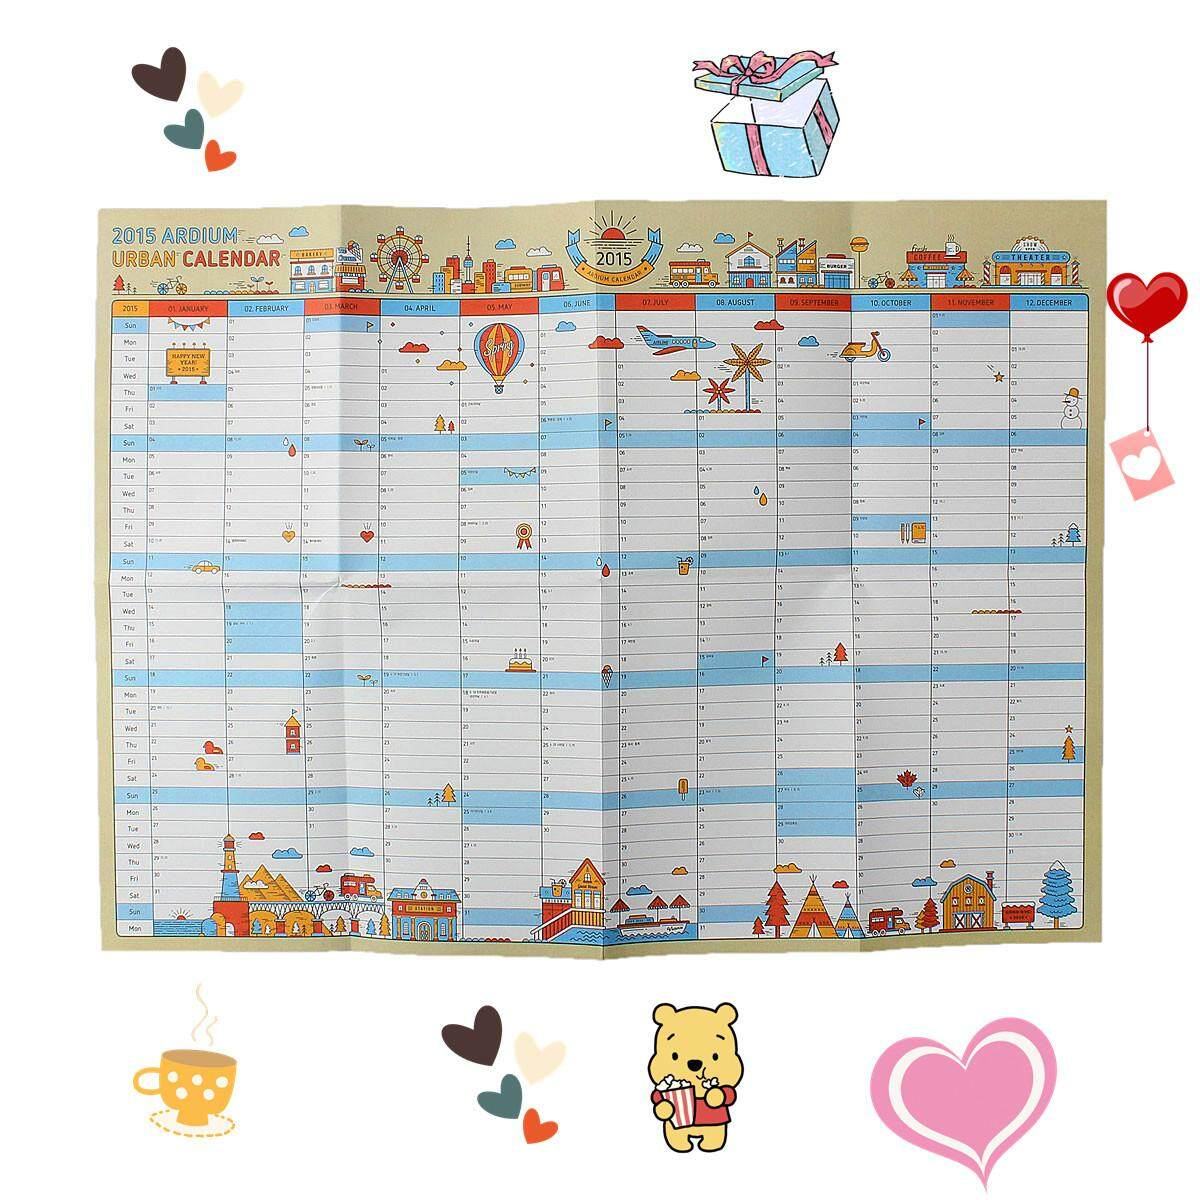 Poster Style Wall Calendar Planner Schedule Journal Agenda Paper Table By Teamtop.